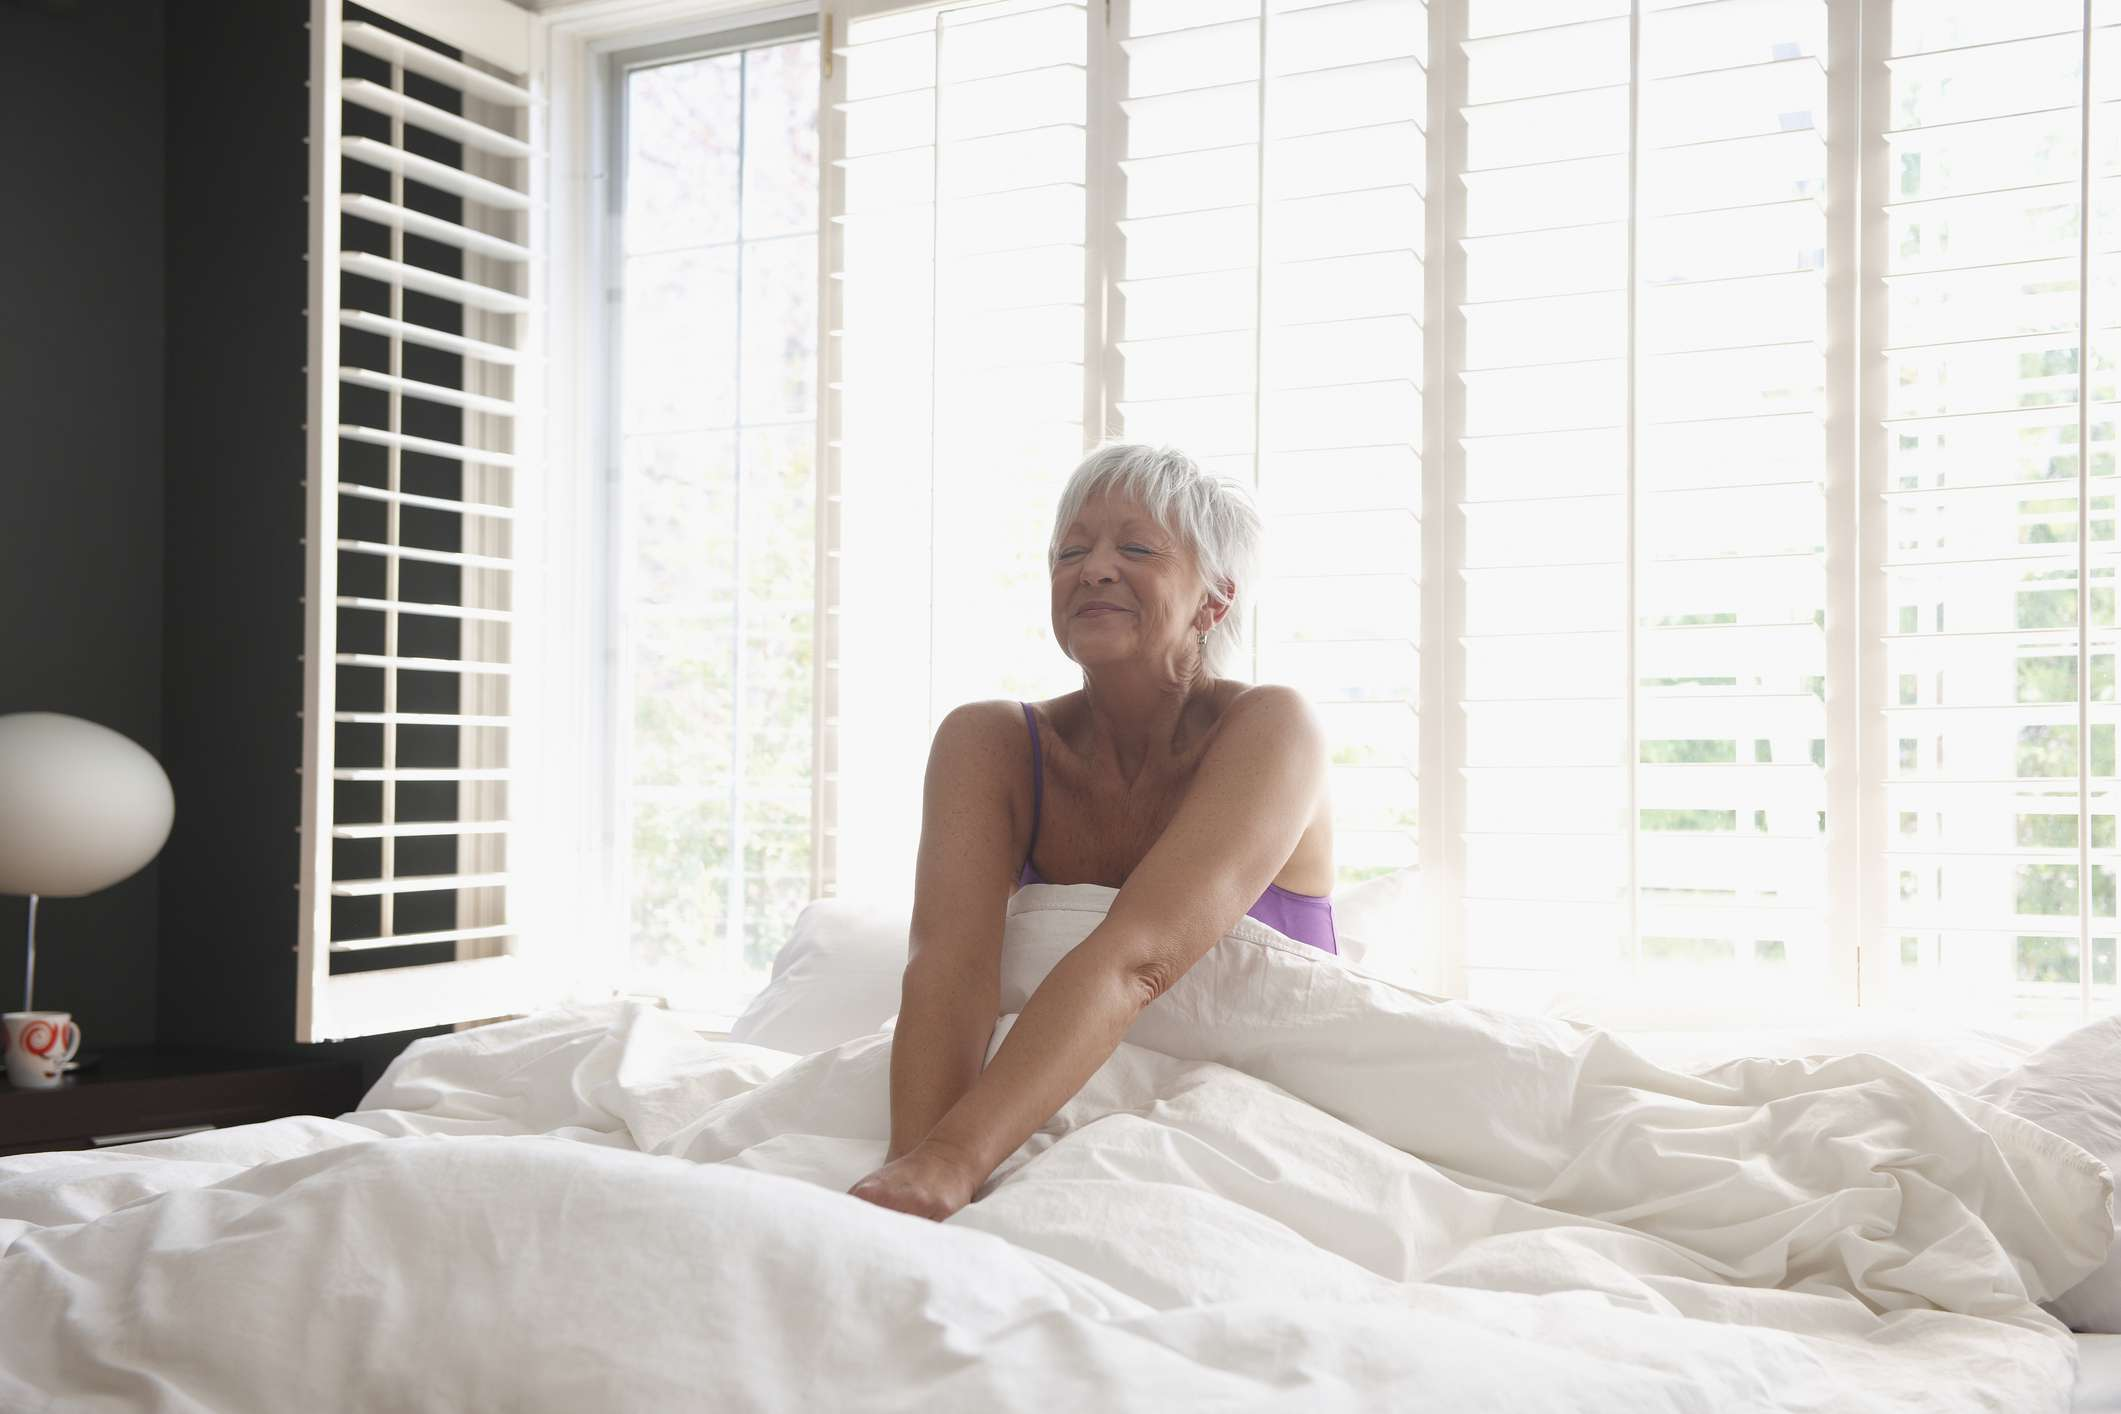 An older woman waking up in bed